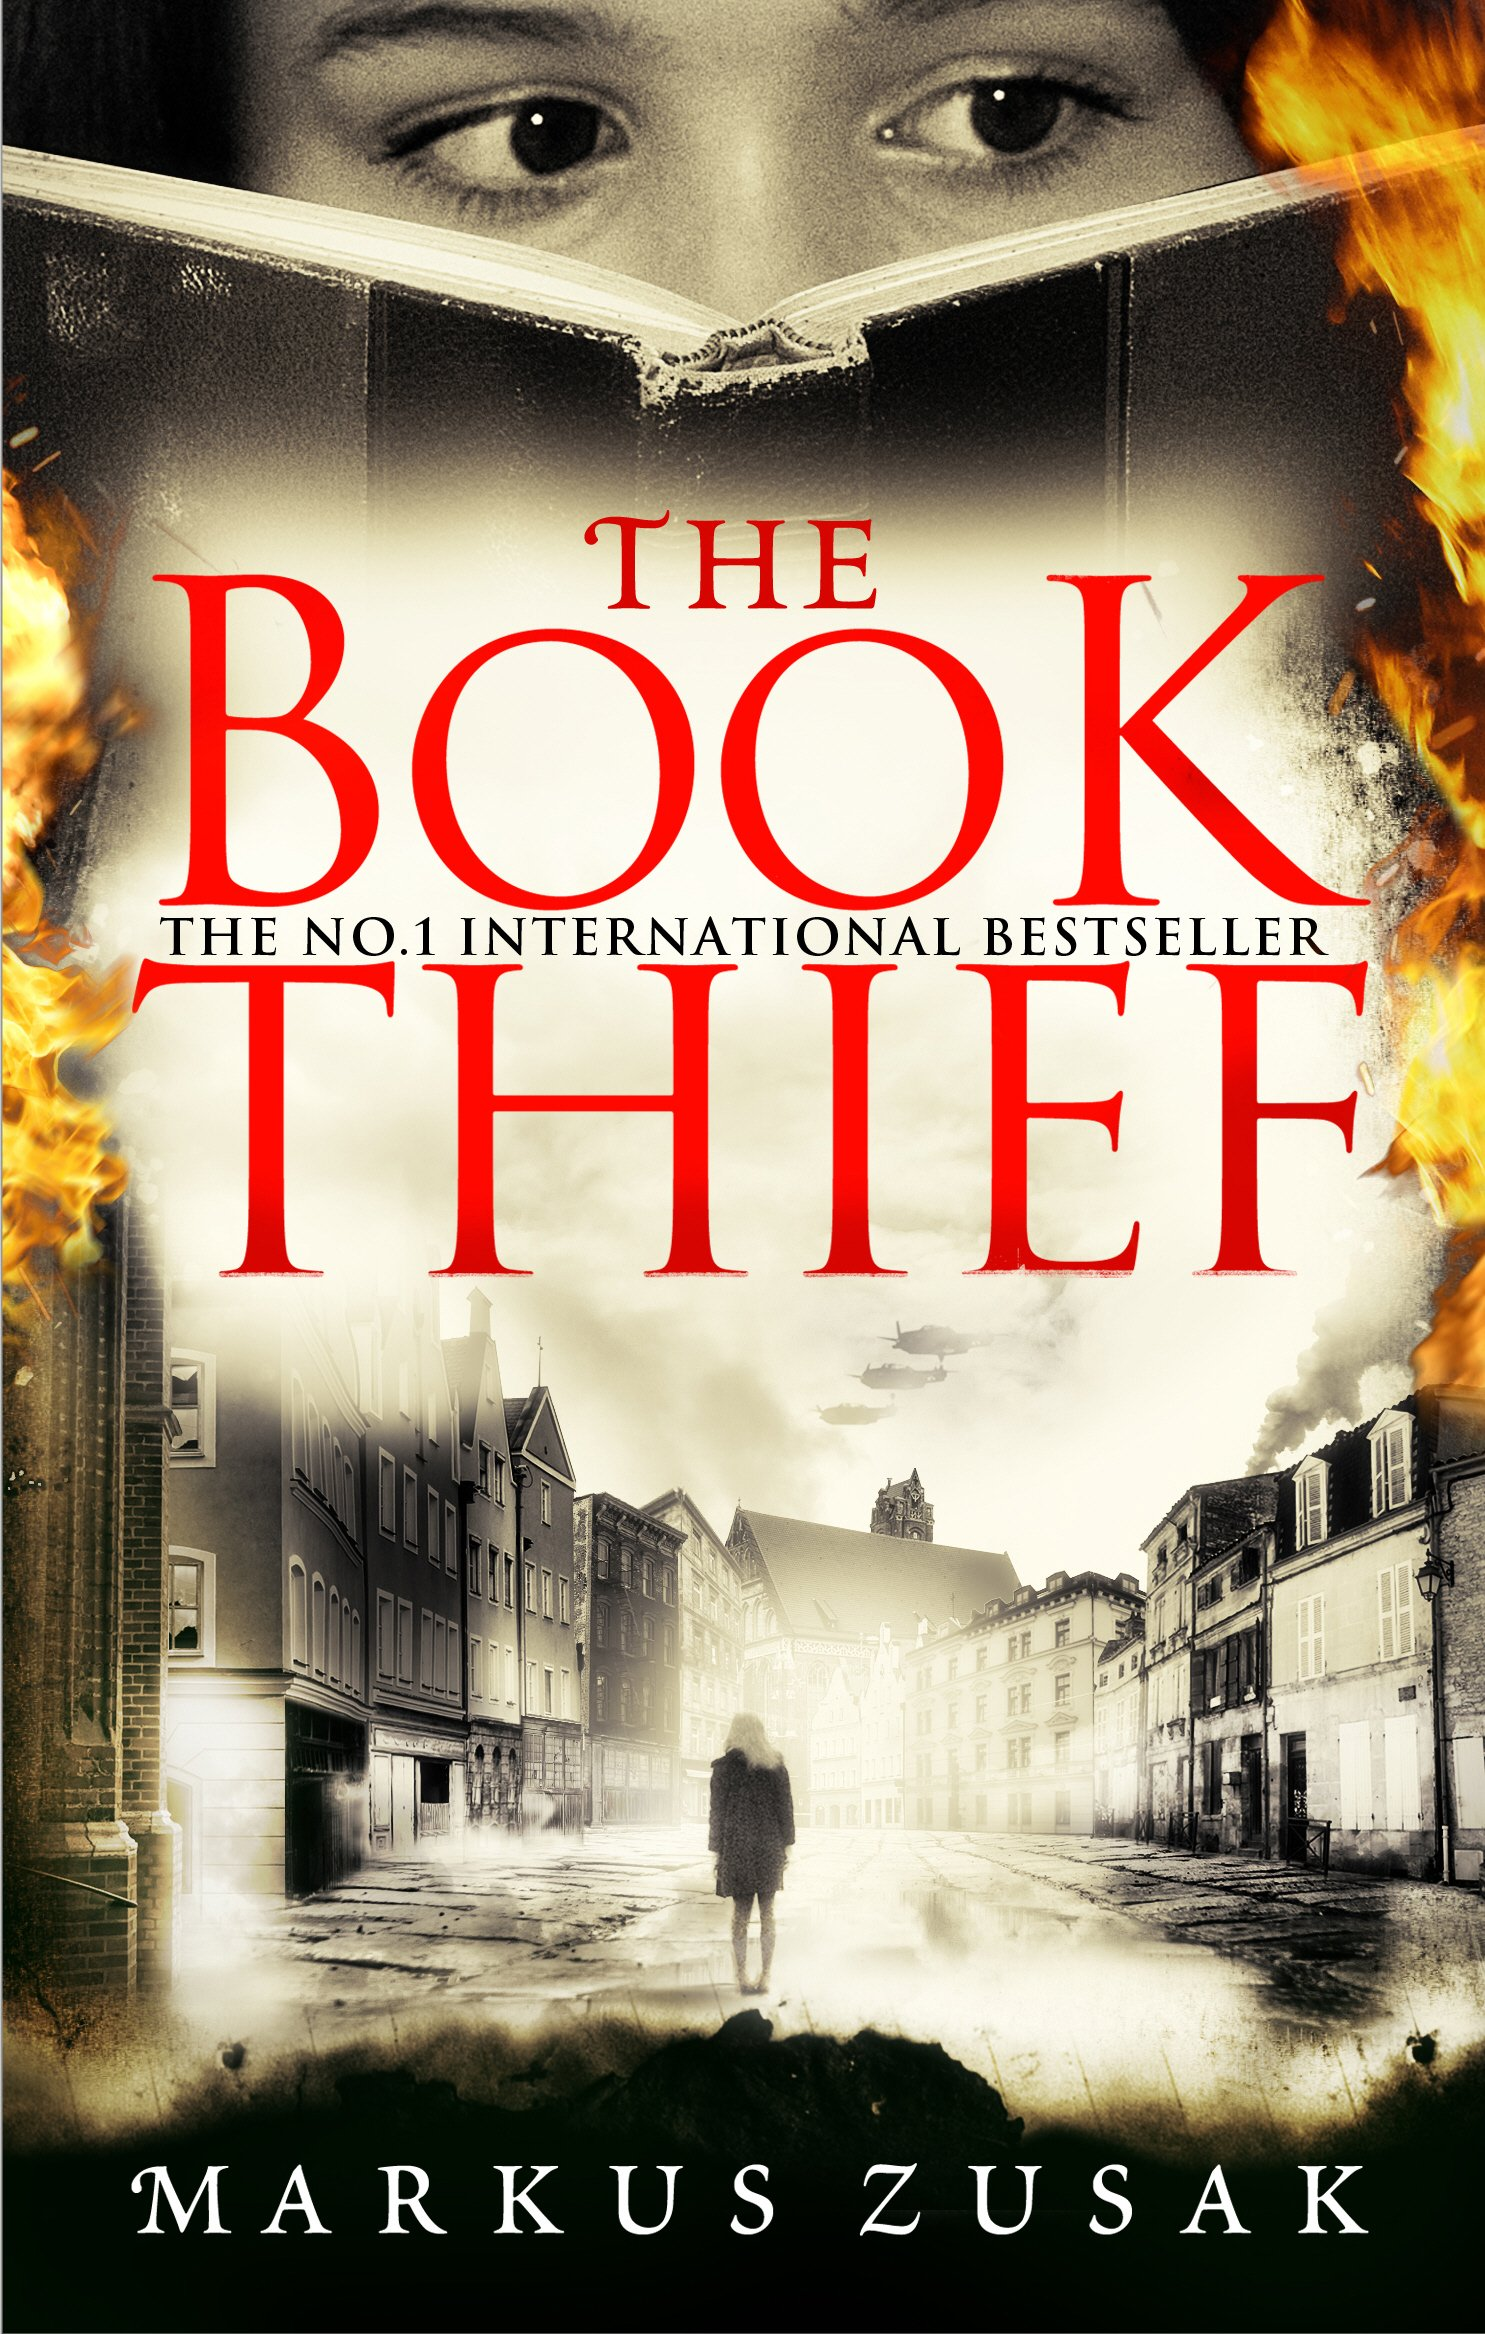 the book thief definitions markus zusak  the book thief definitions markus zusak 9781862302914 com books